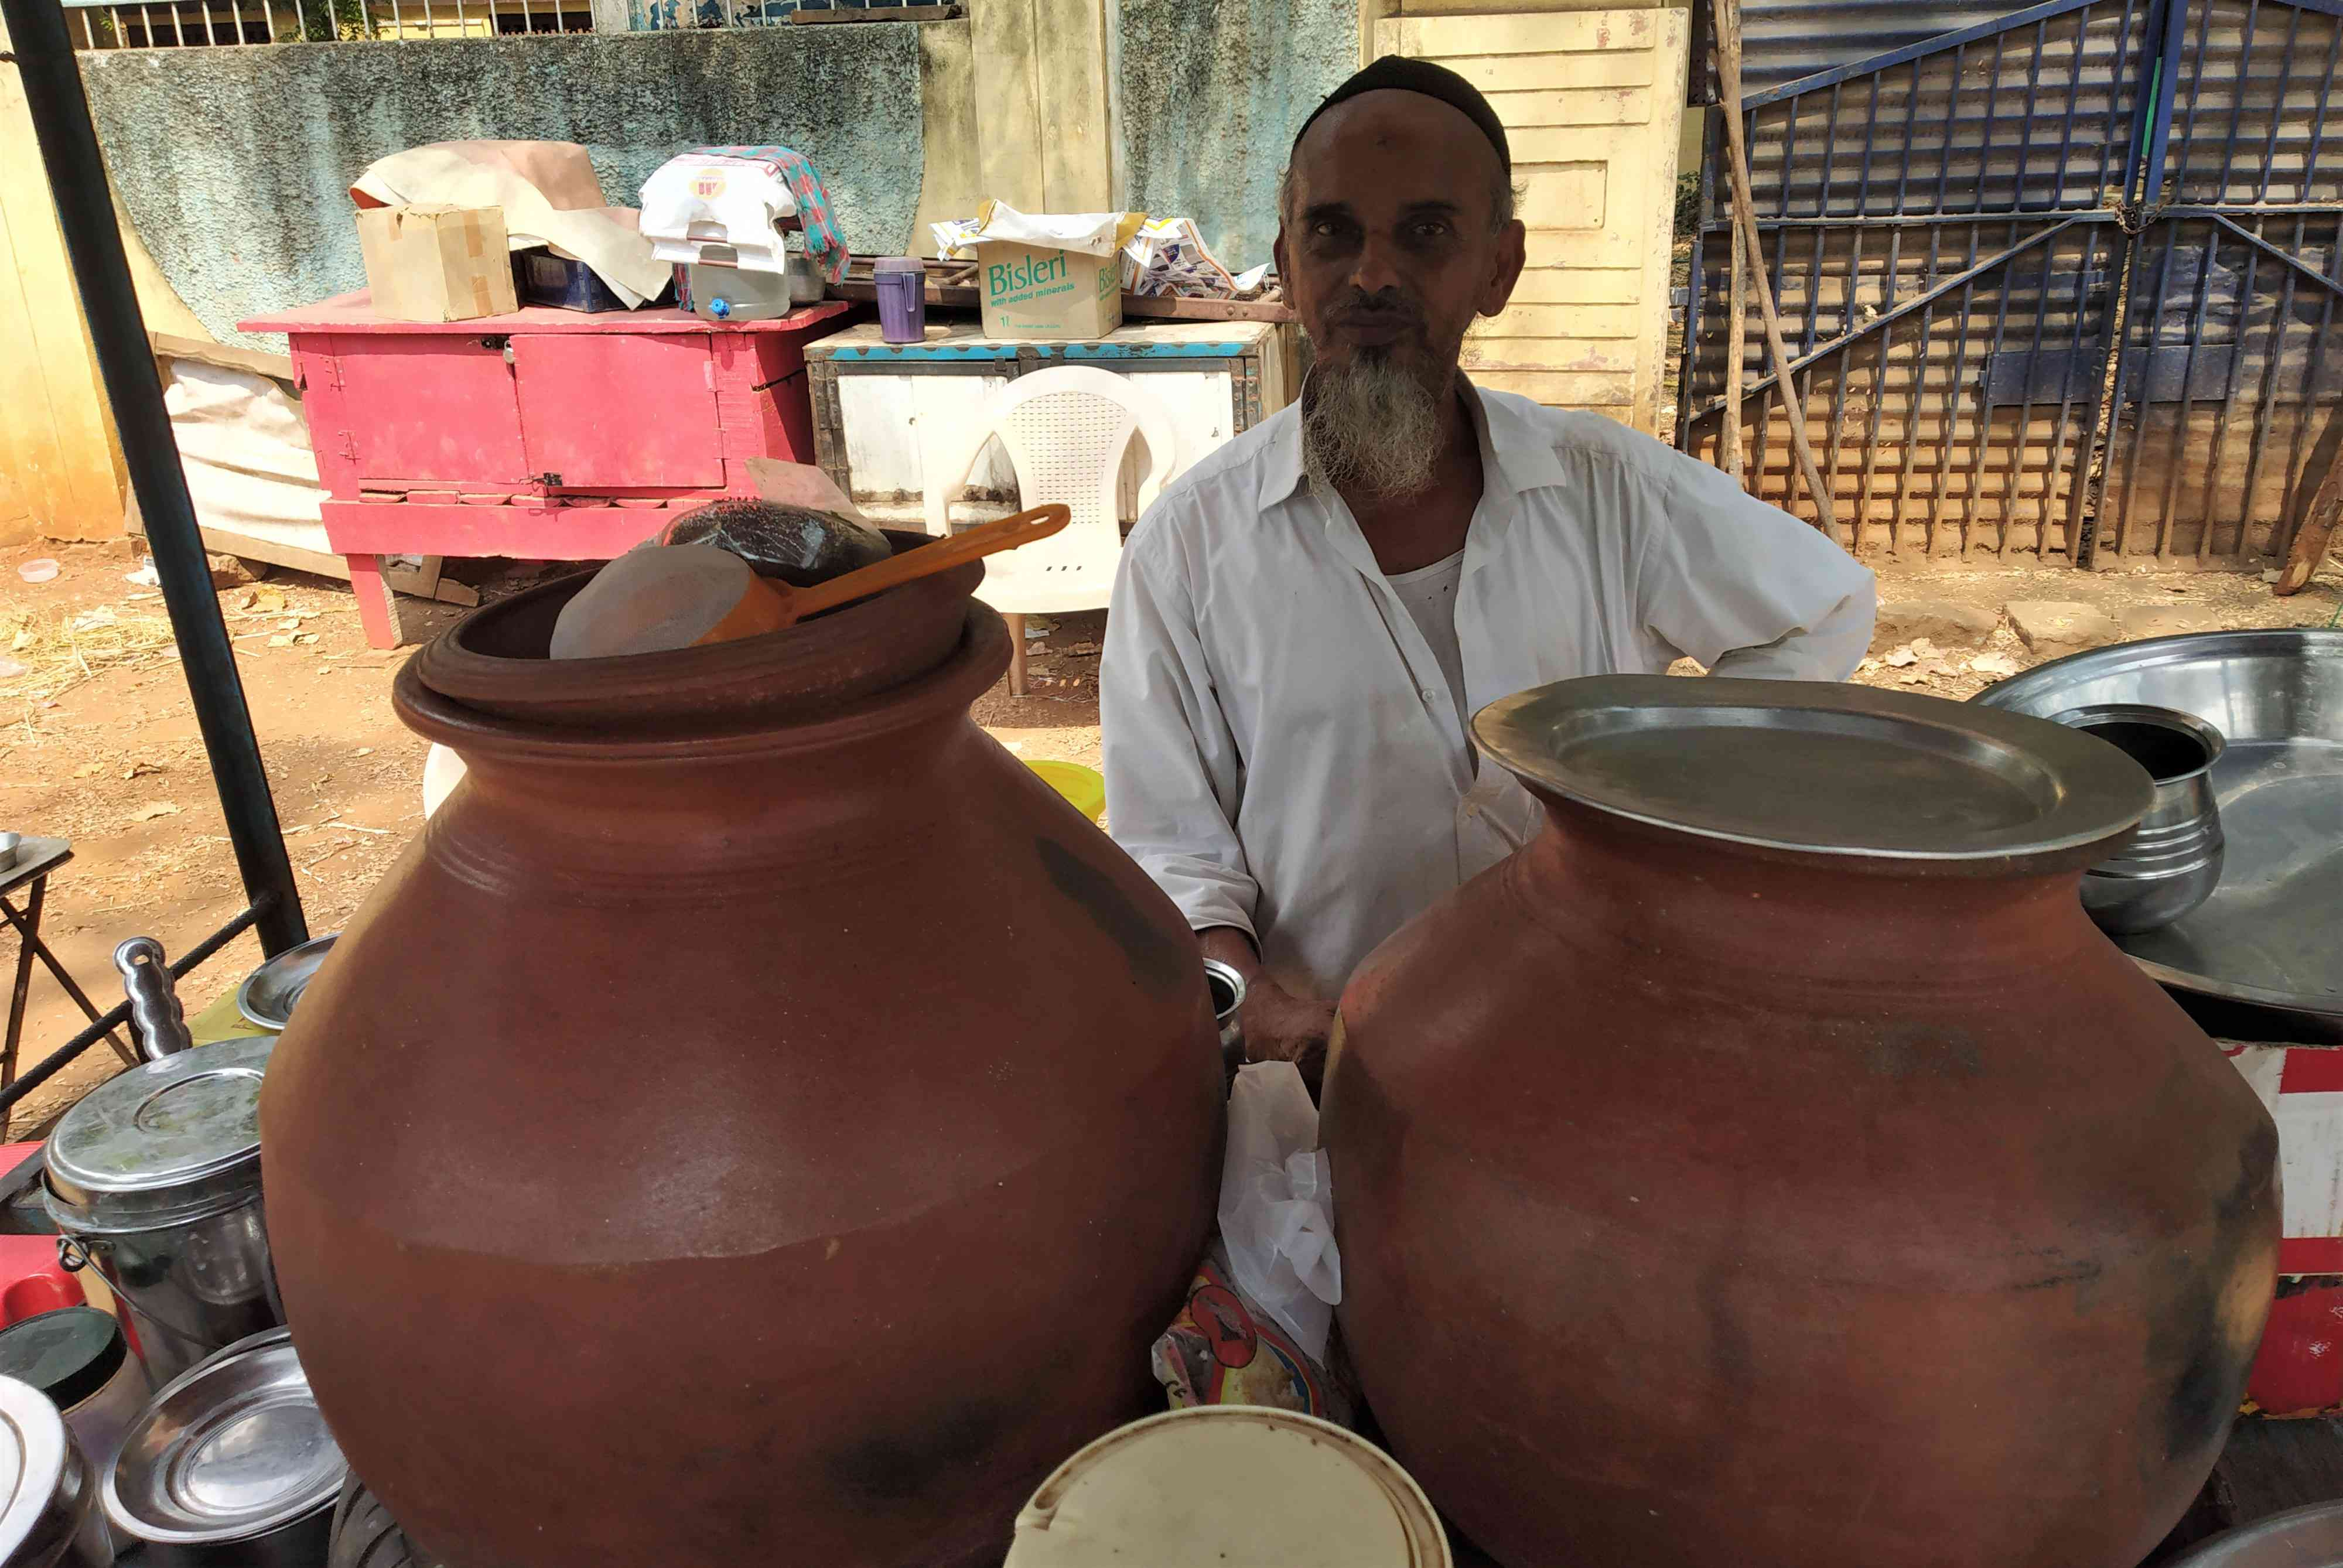 Akbar Ali says essential commodities have become costlier under the Narendra Modi government. Photo credit: Sruthisagar Yamunan